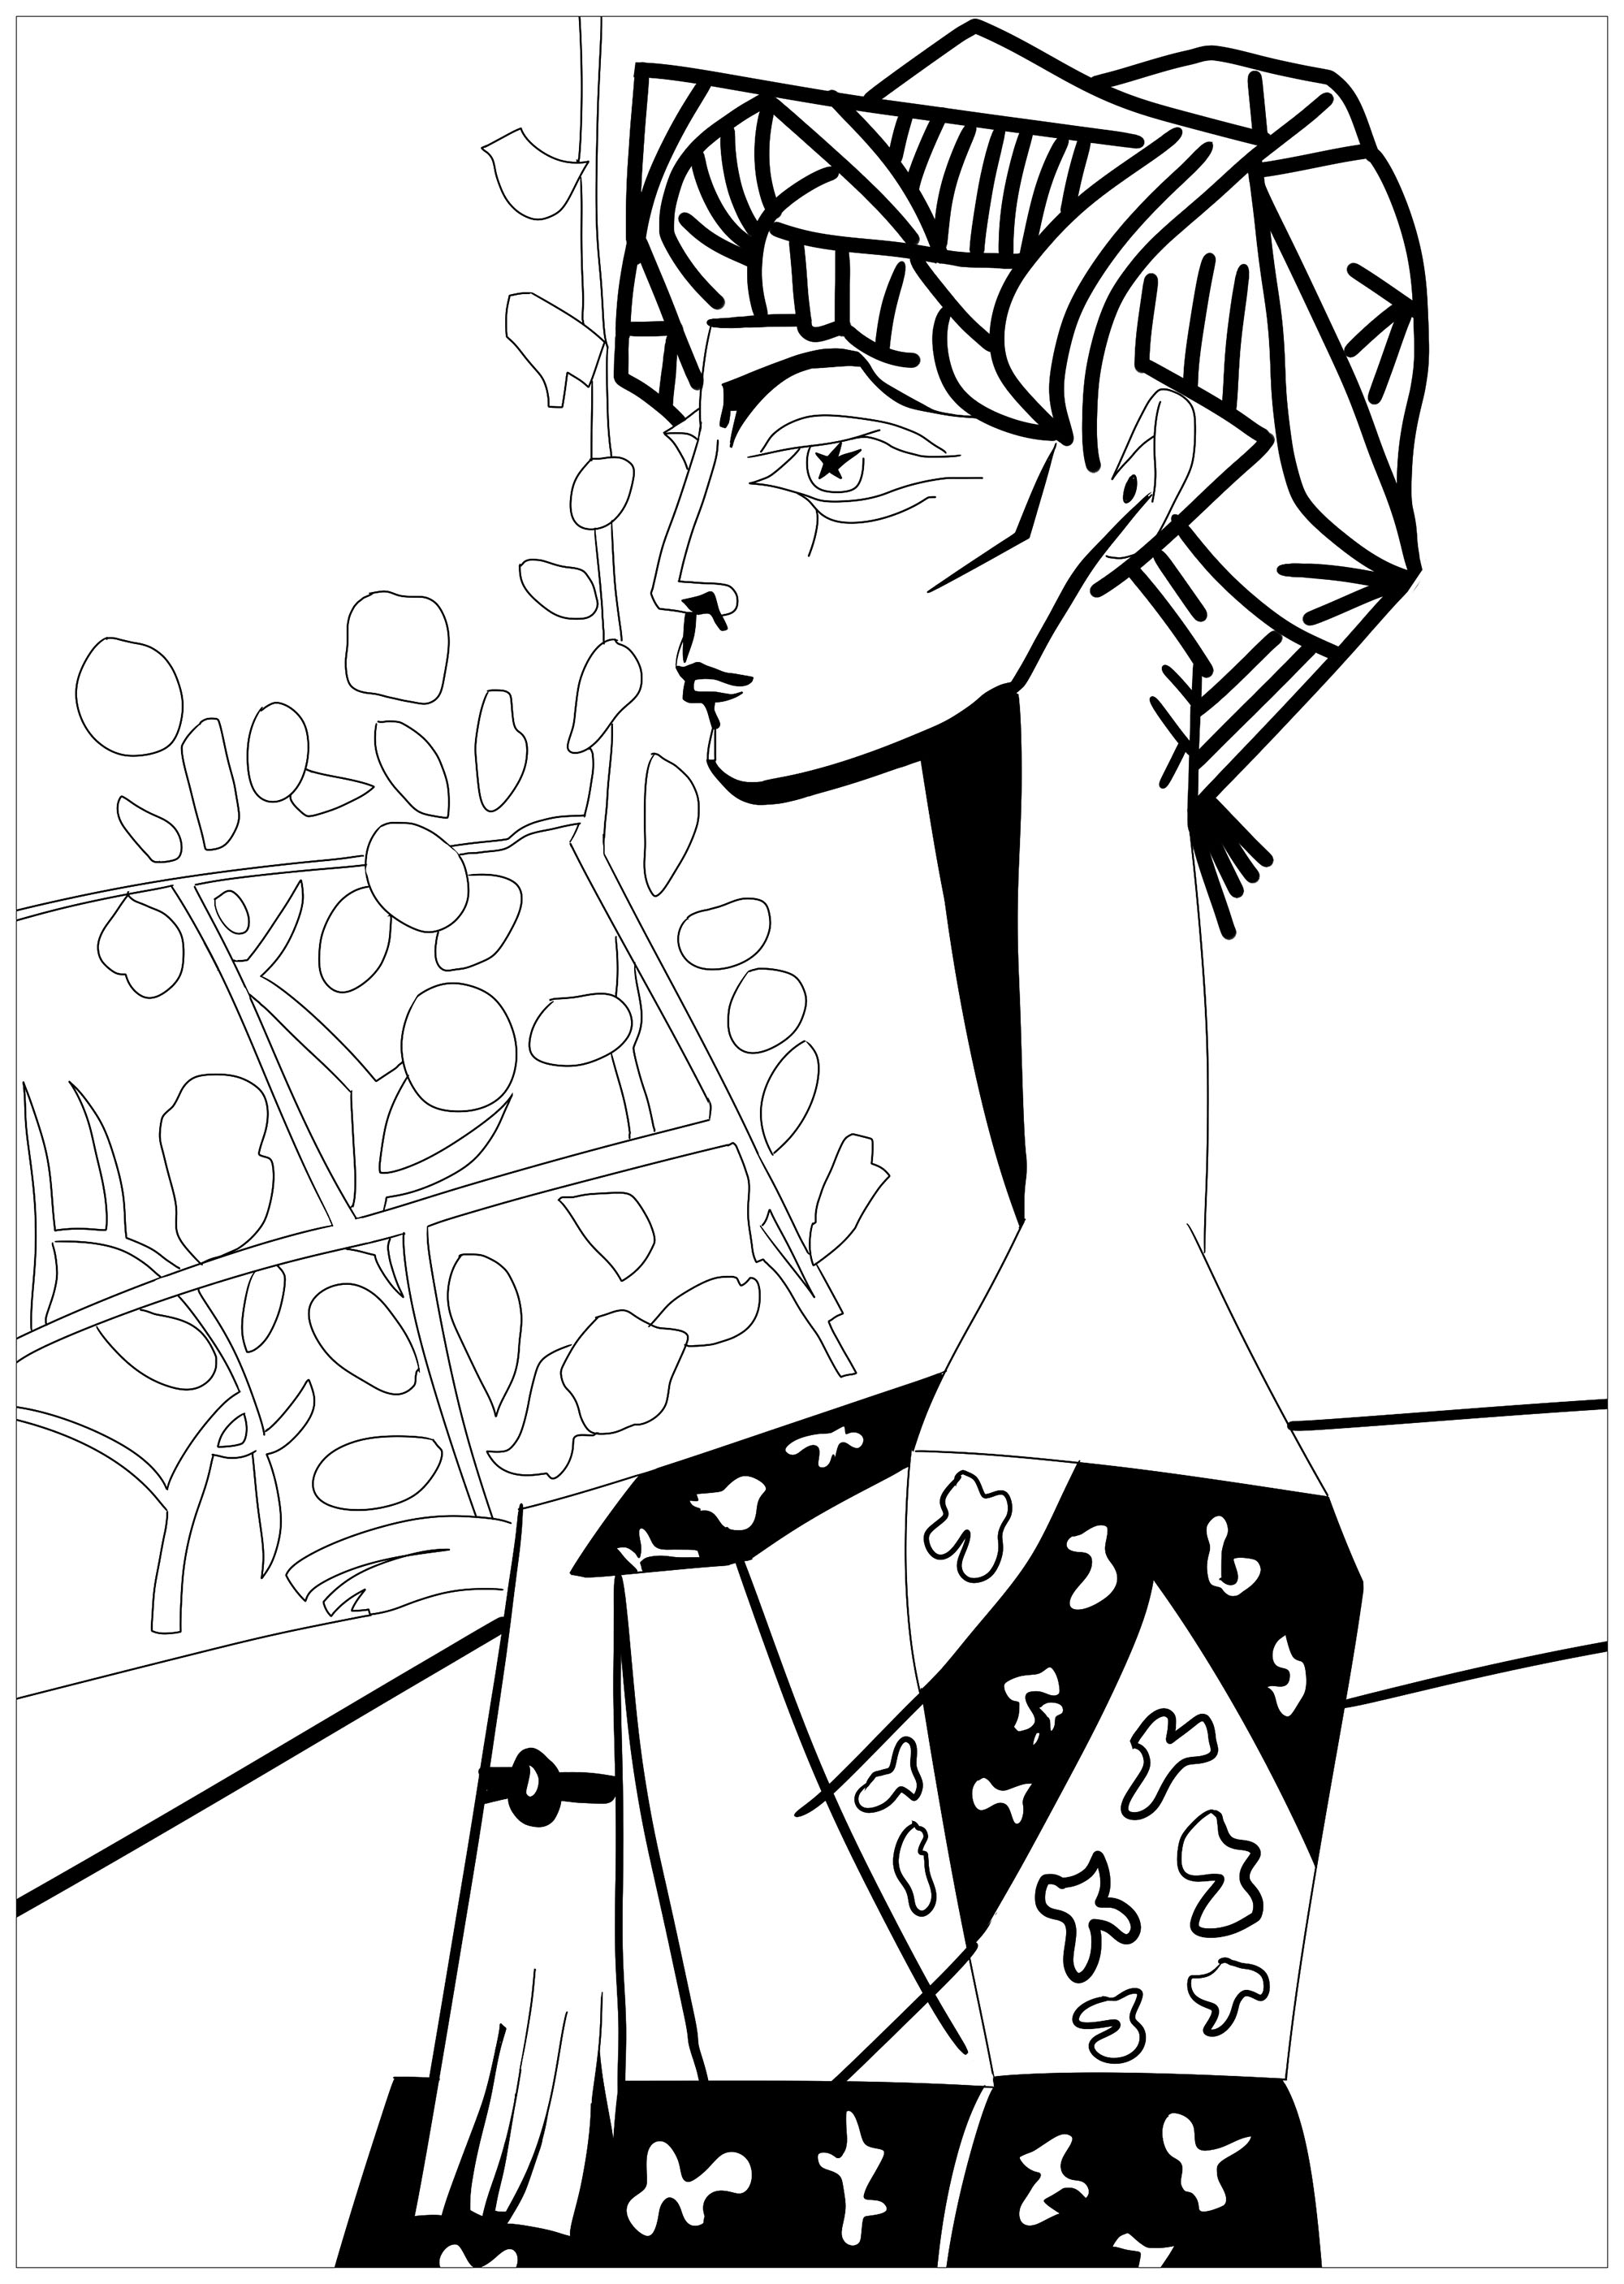 pablo picasso to color for kids pablo picasso kids coloring pages